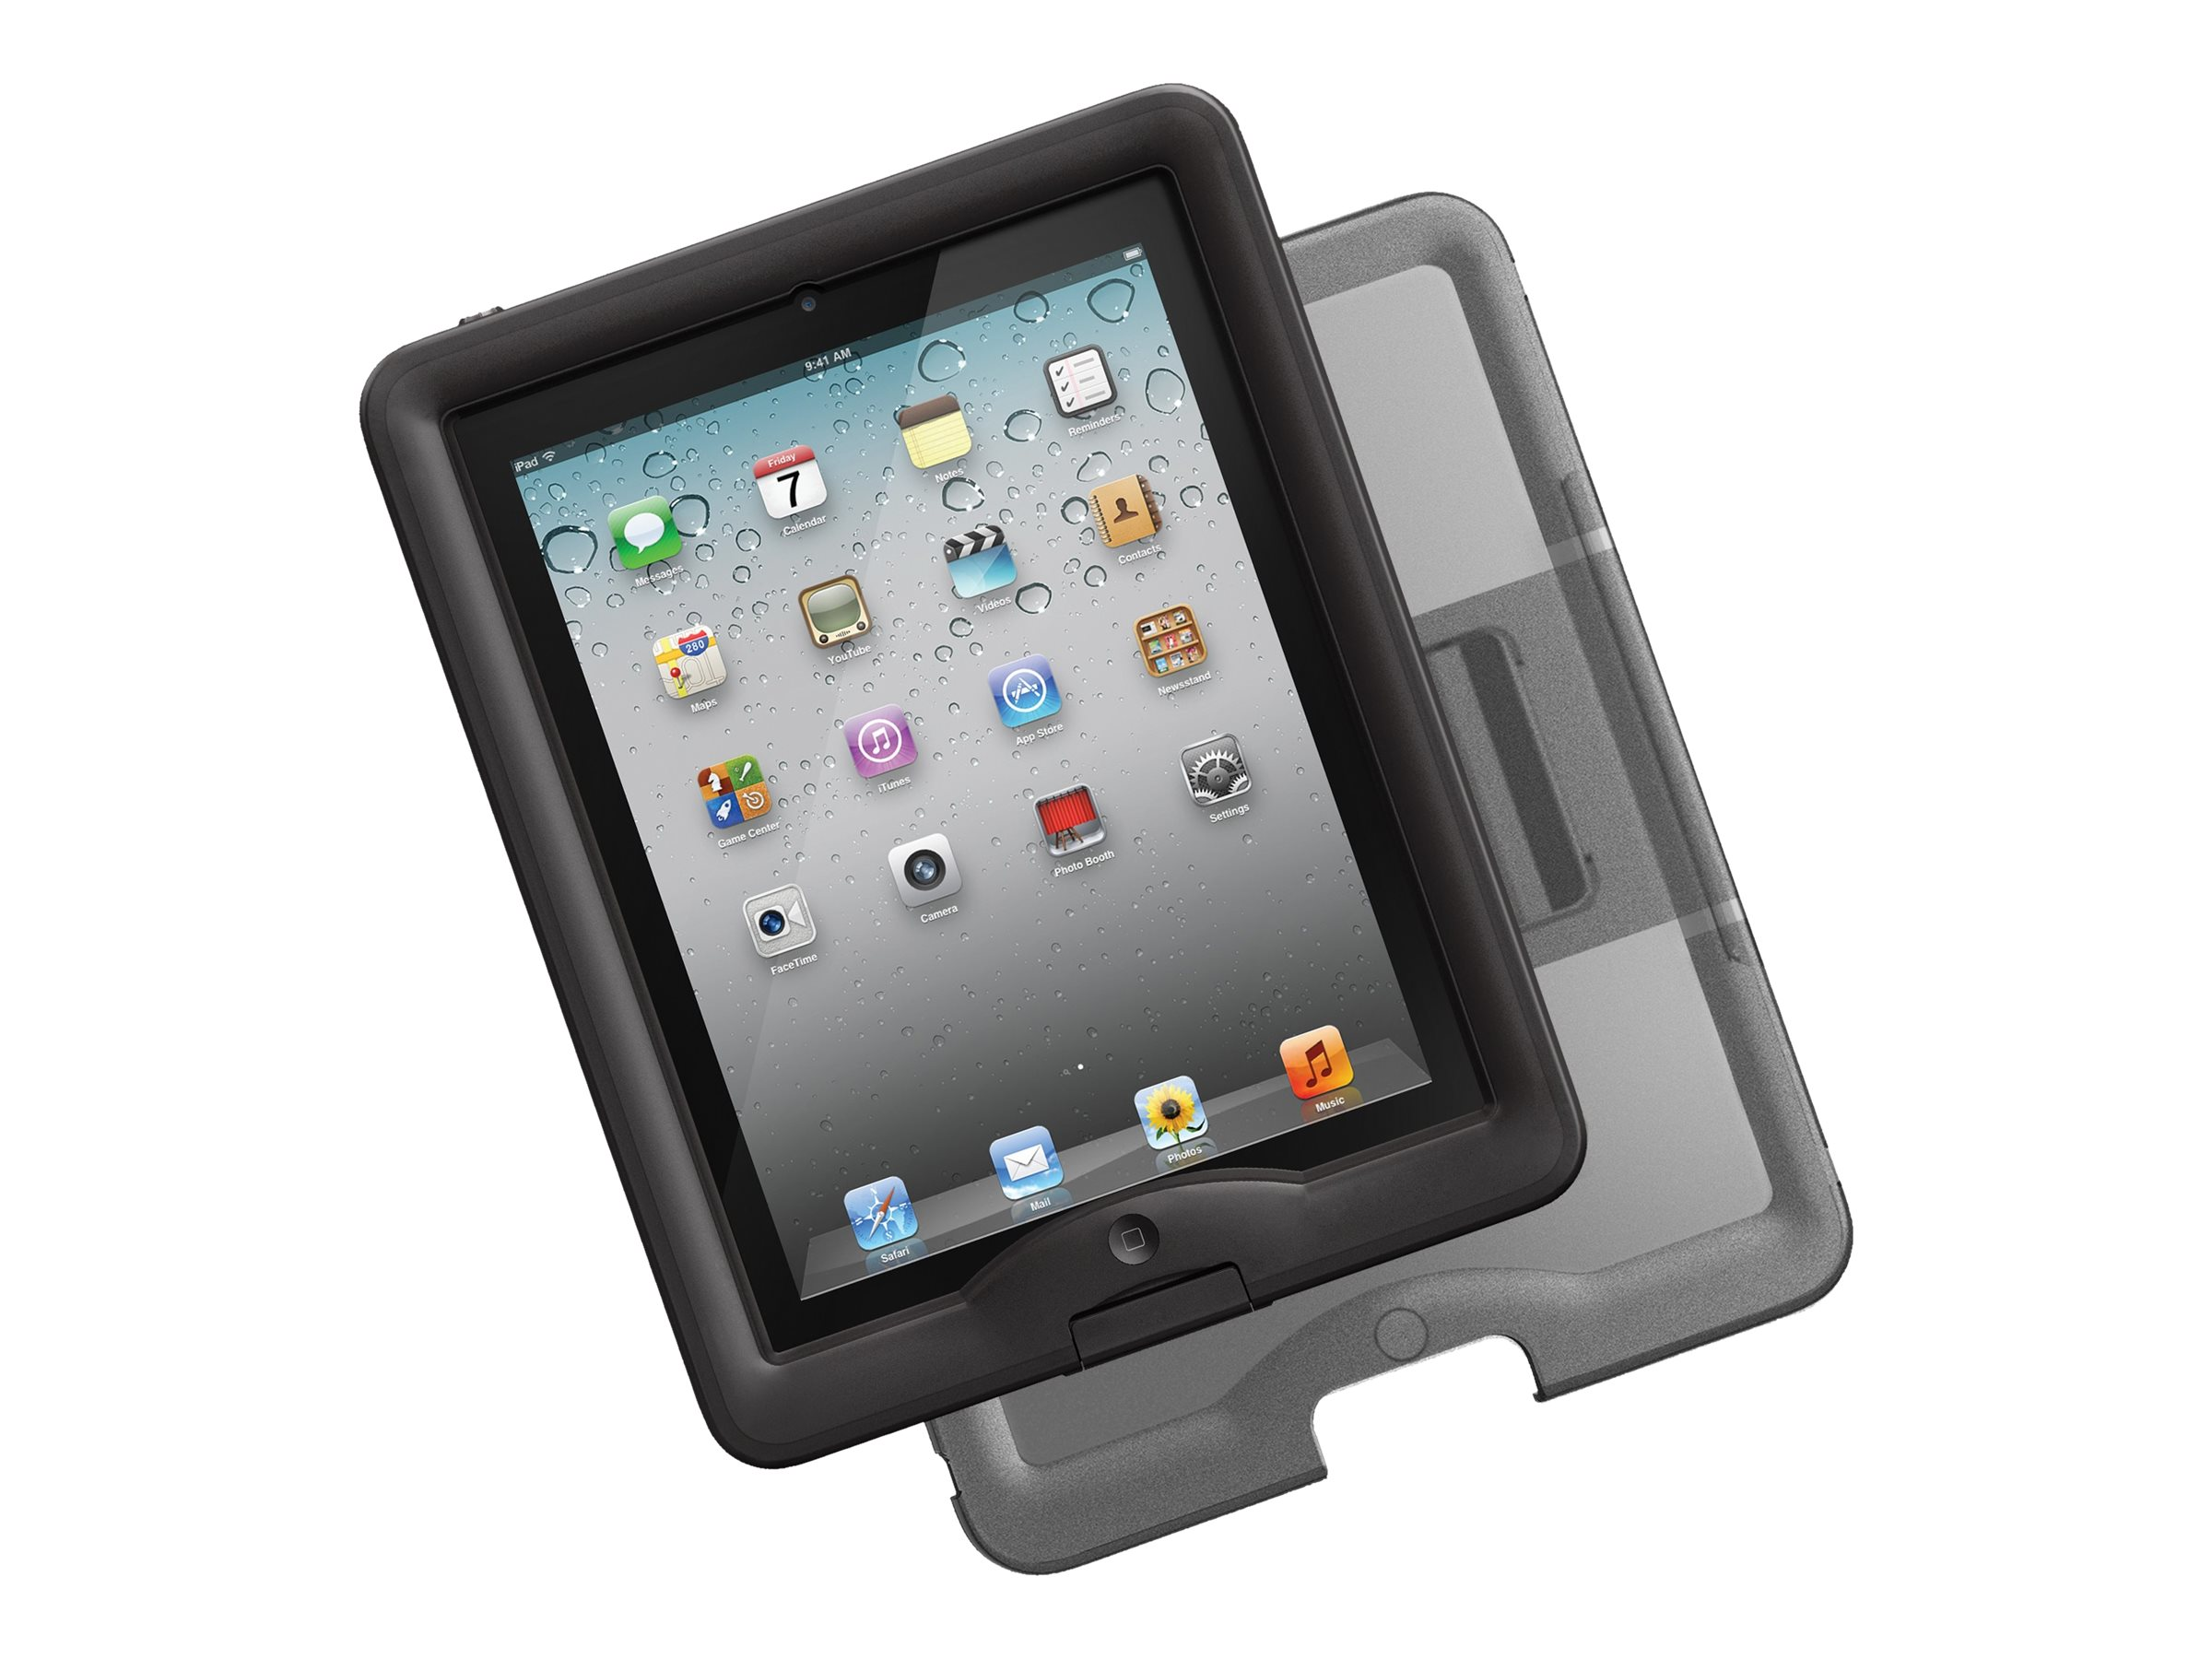 Lifeproof NUUD for iPad 2 3 4, Black, 1103-01, 18622692, Carrying Cases - Tablets & eReaders